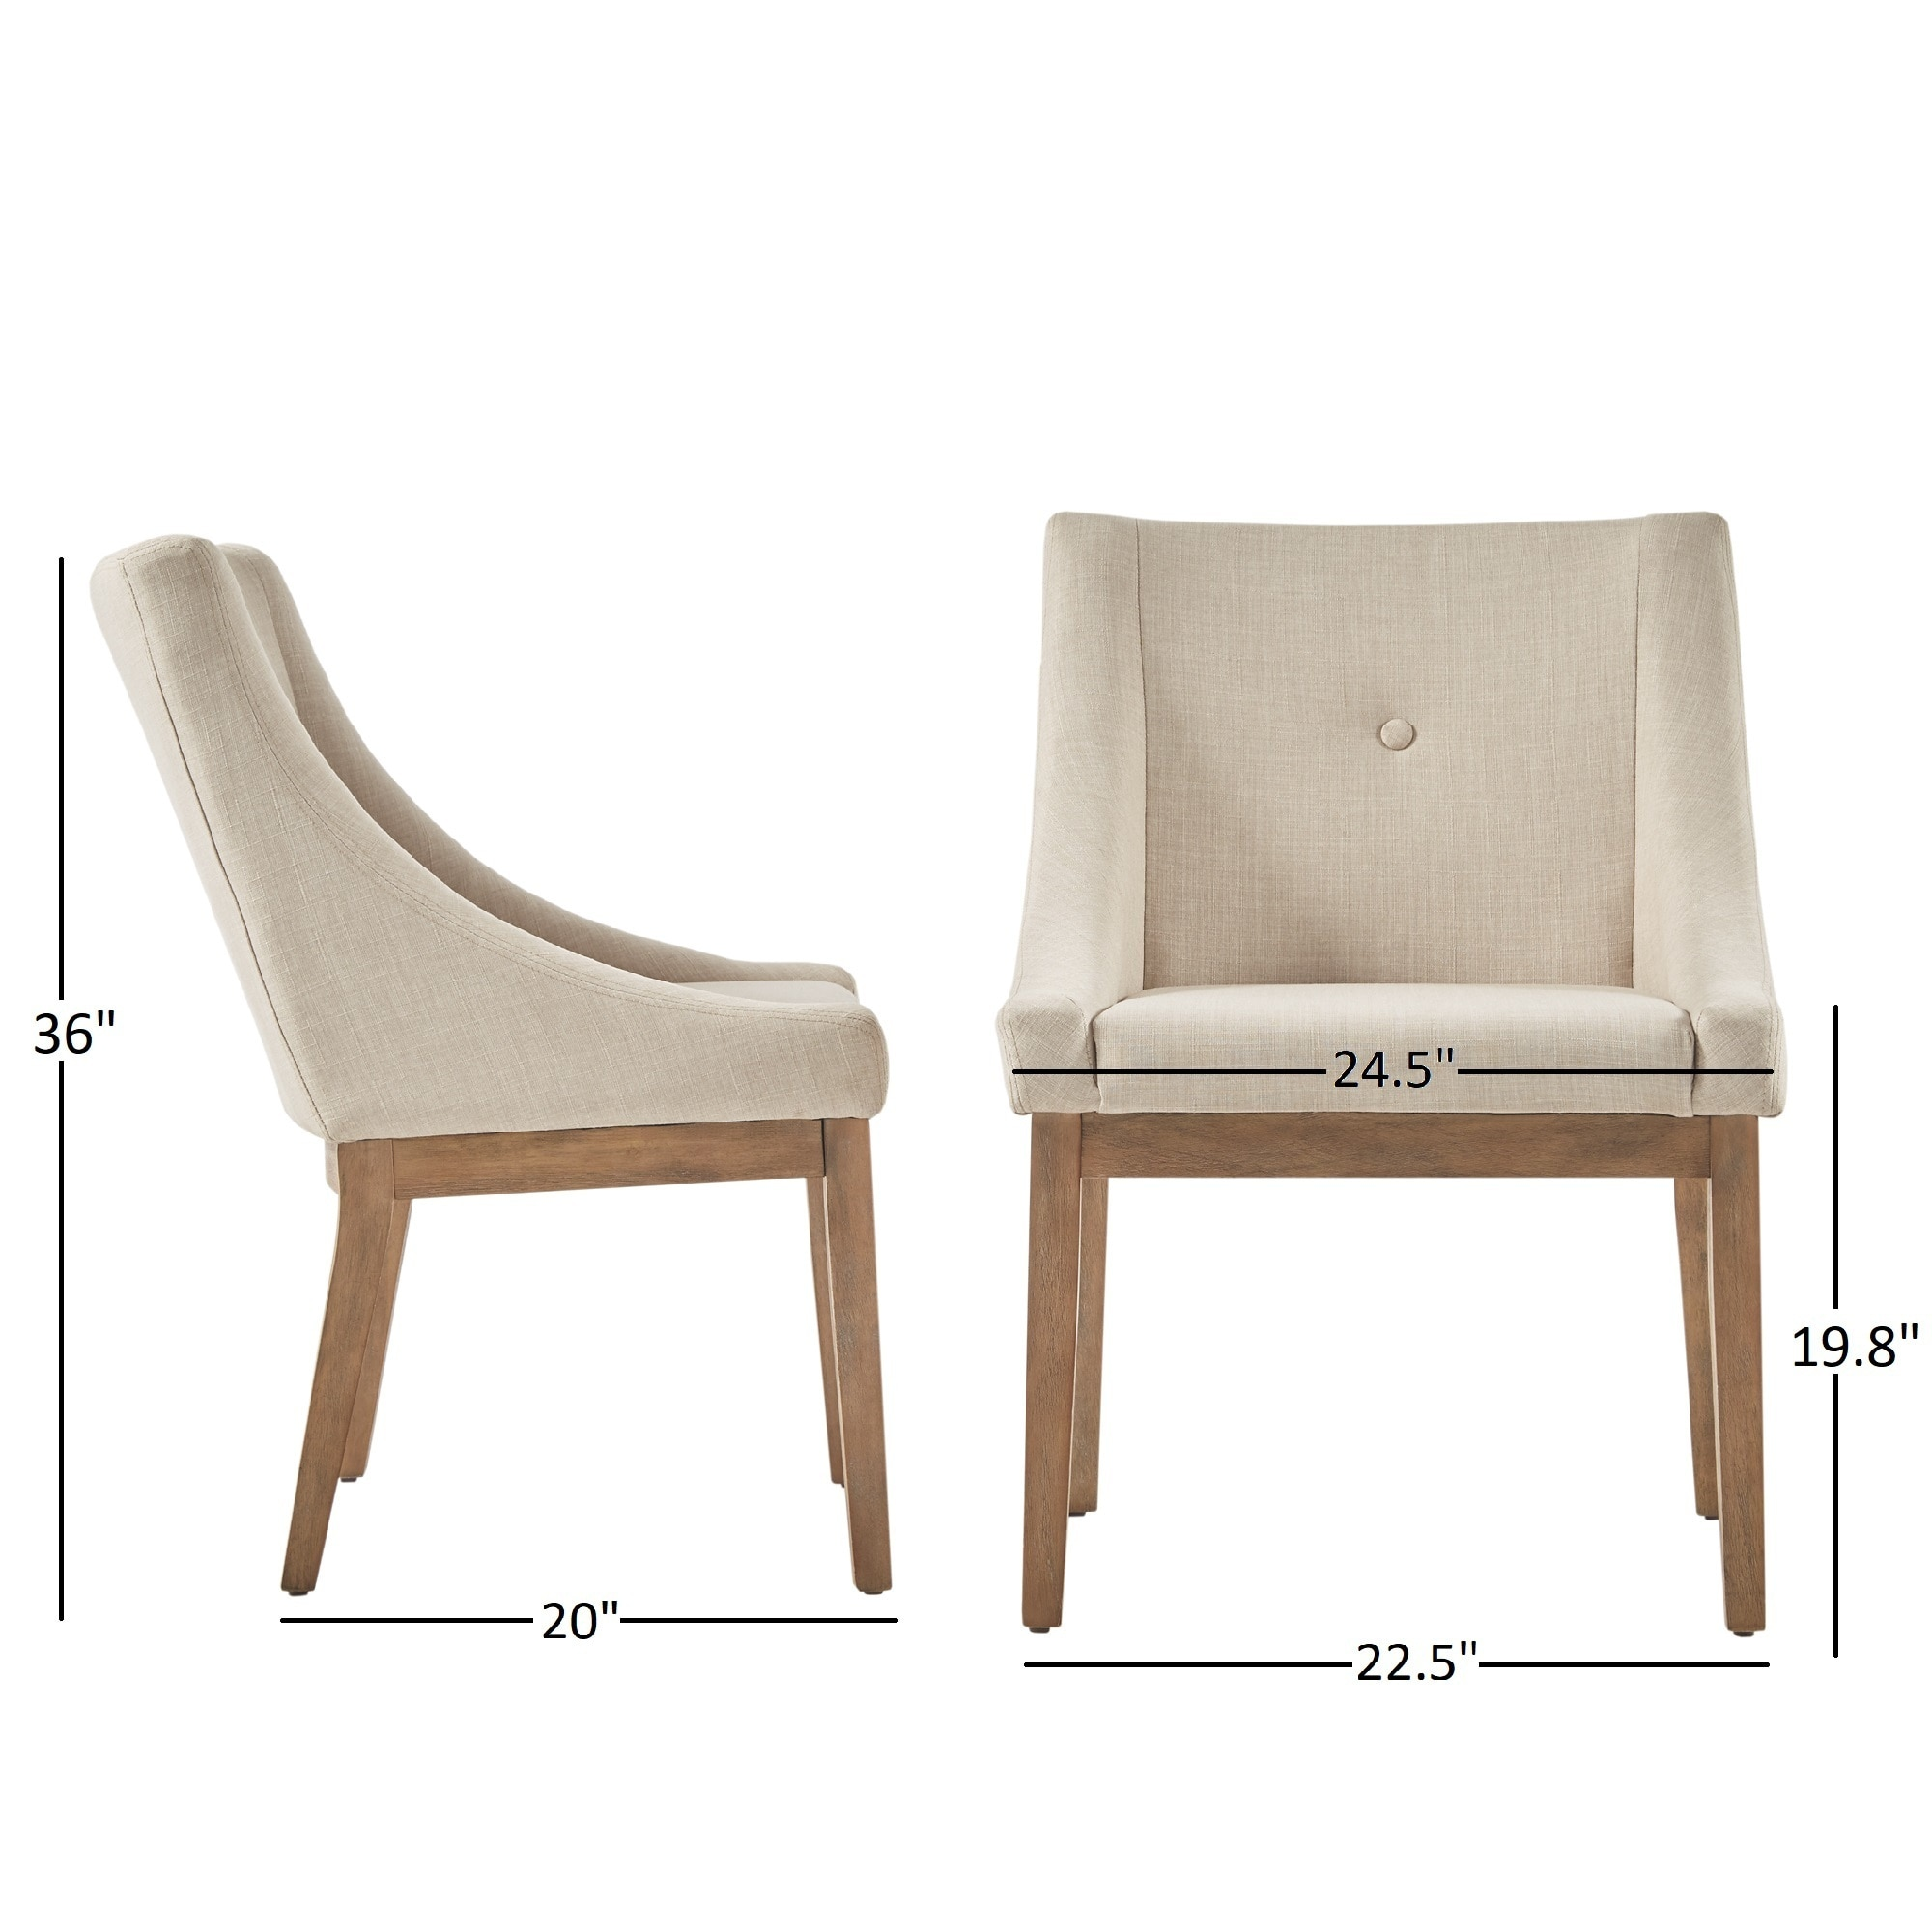 Janelle Round Rustic Zinc Dining Set - Sloped Arm Chairs by iNSPIRE Q  Artisan - Free Shipping Today - Overstock.com - 25774755